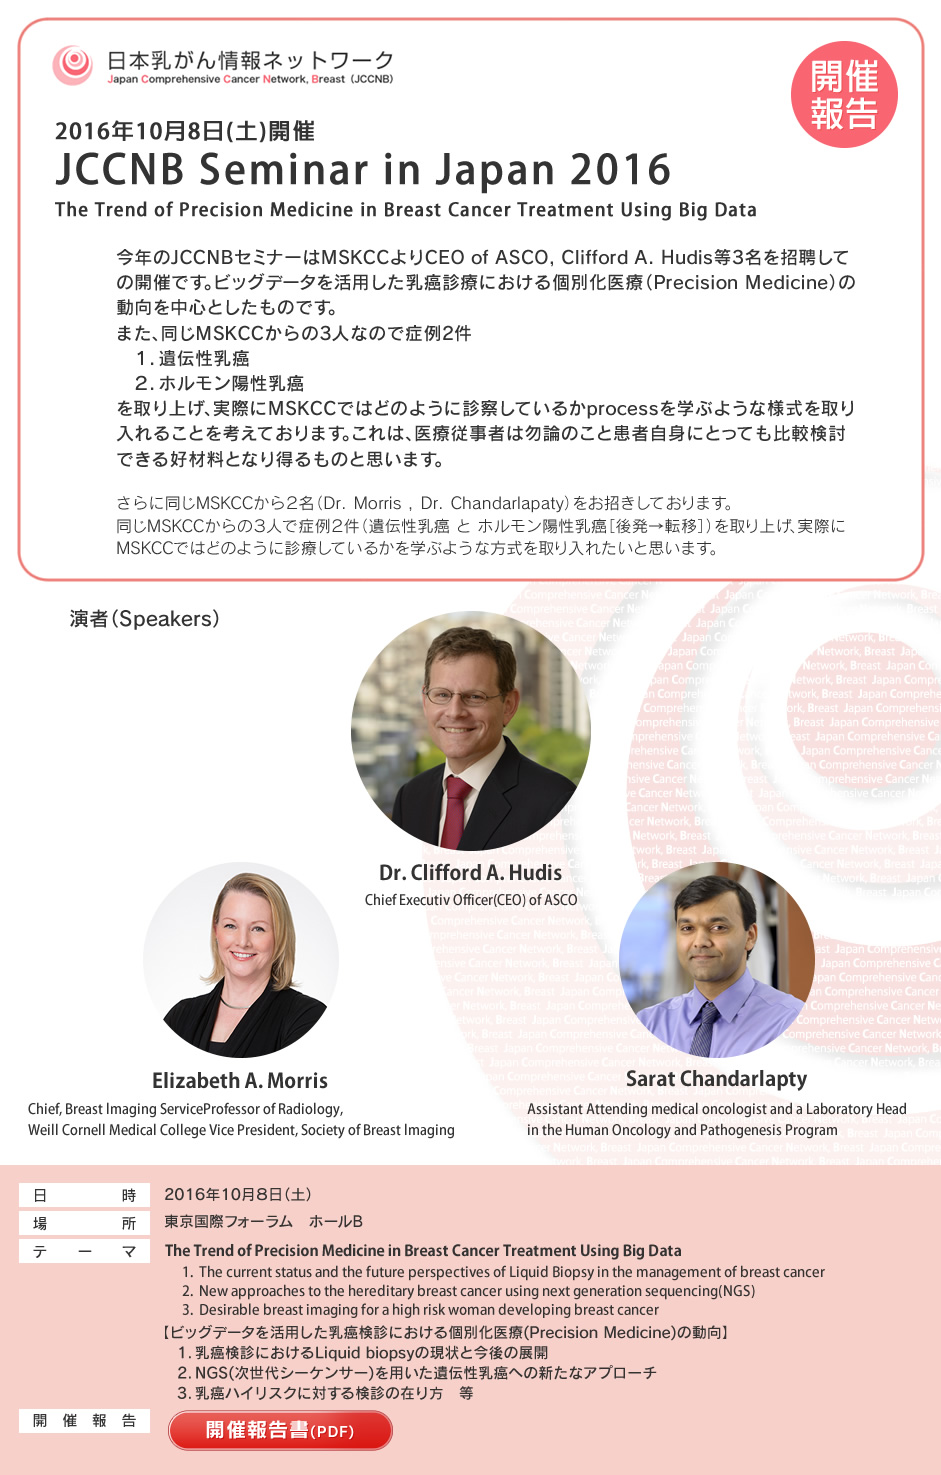 JCCNB Seminar in Japan 2016のご案内